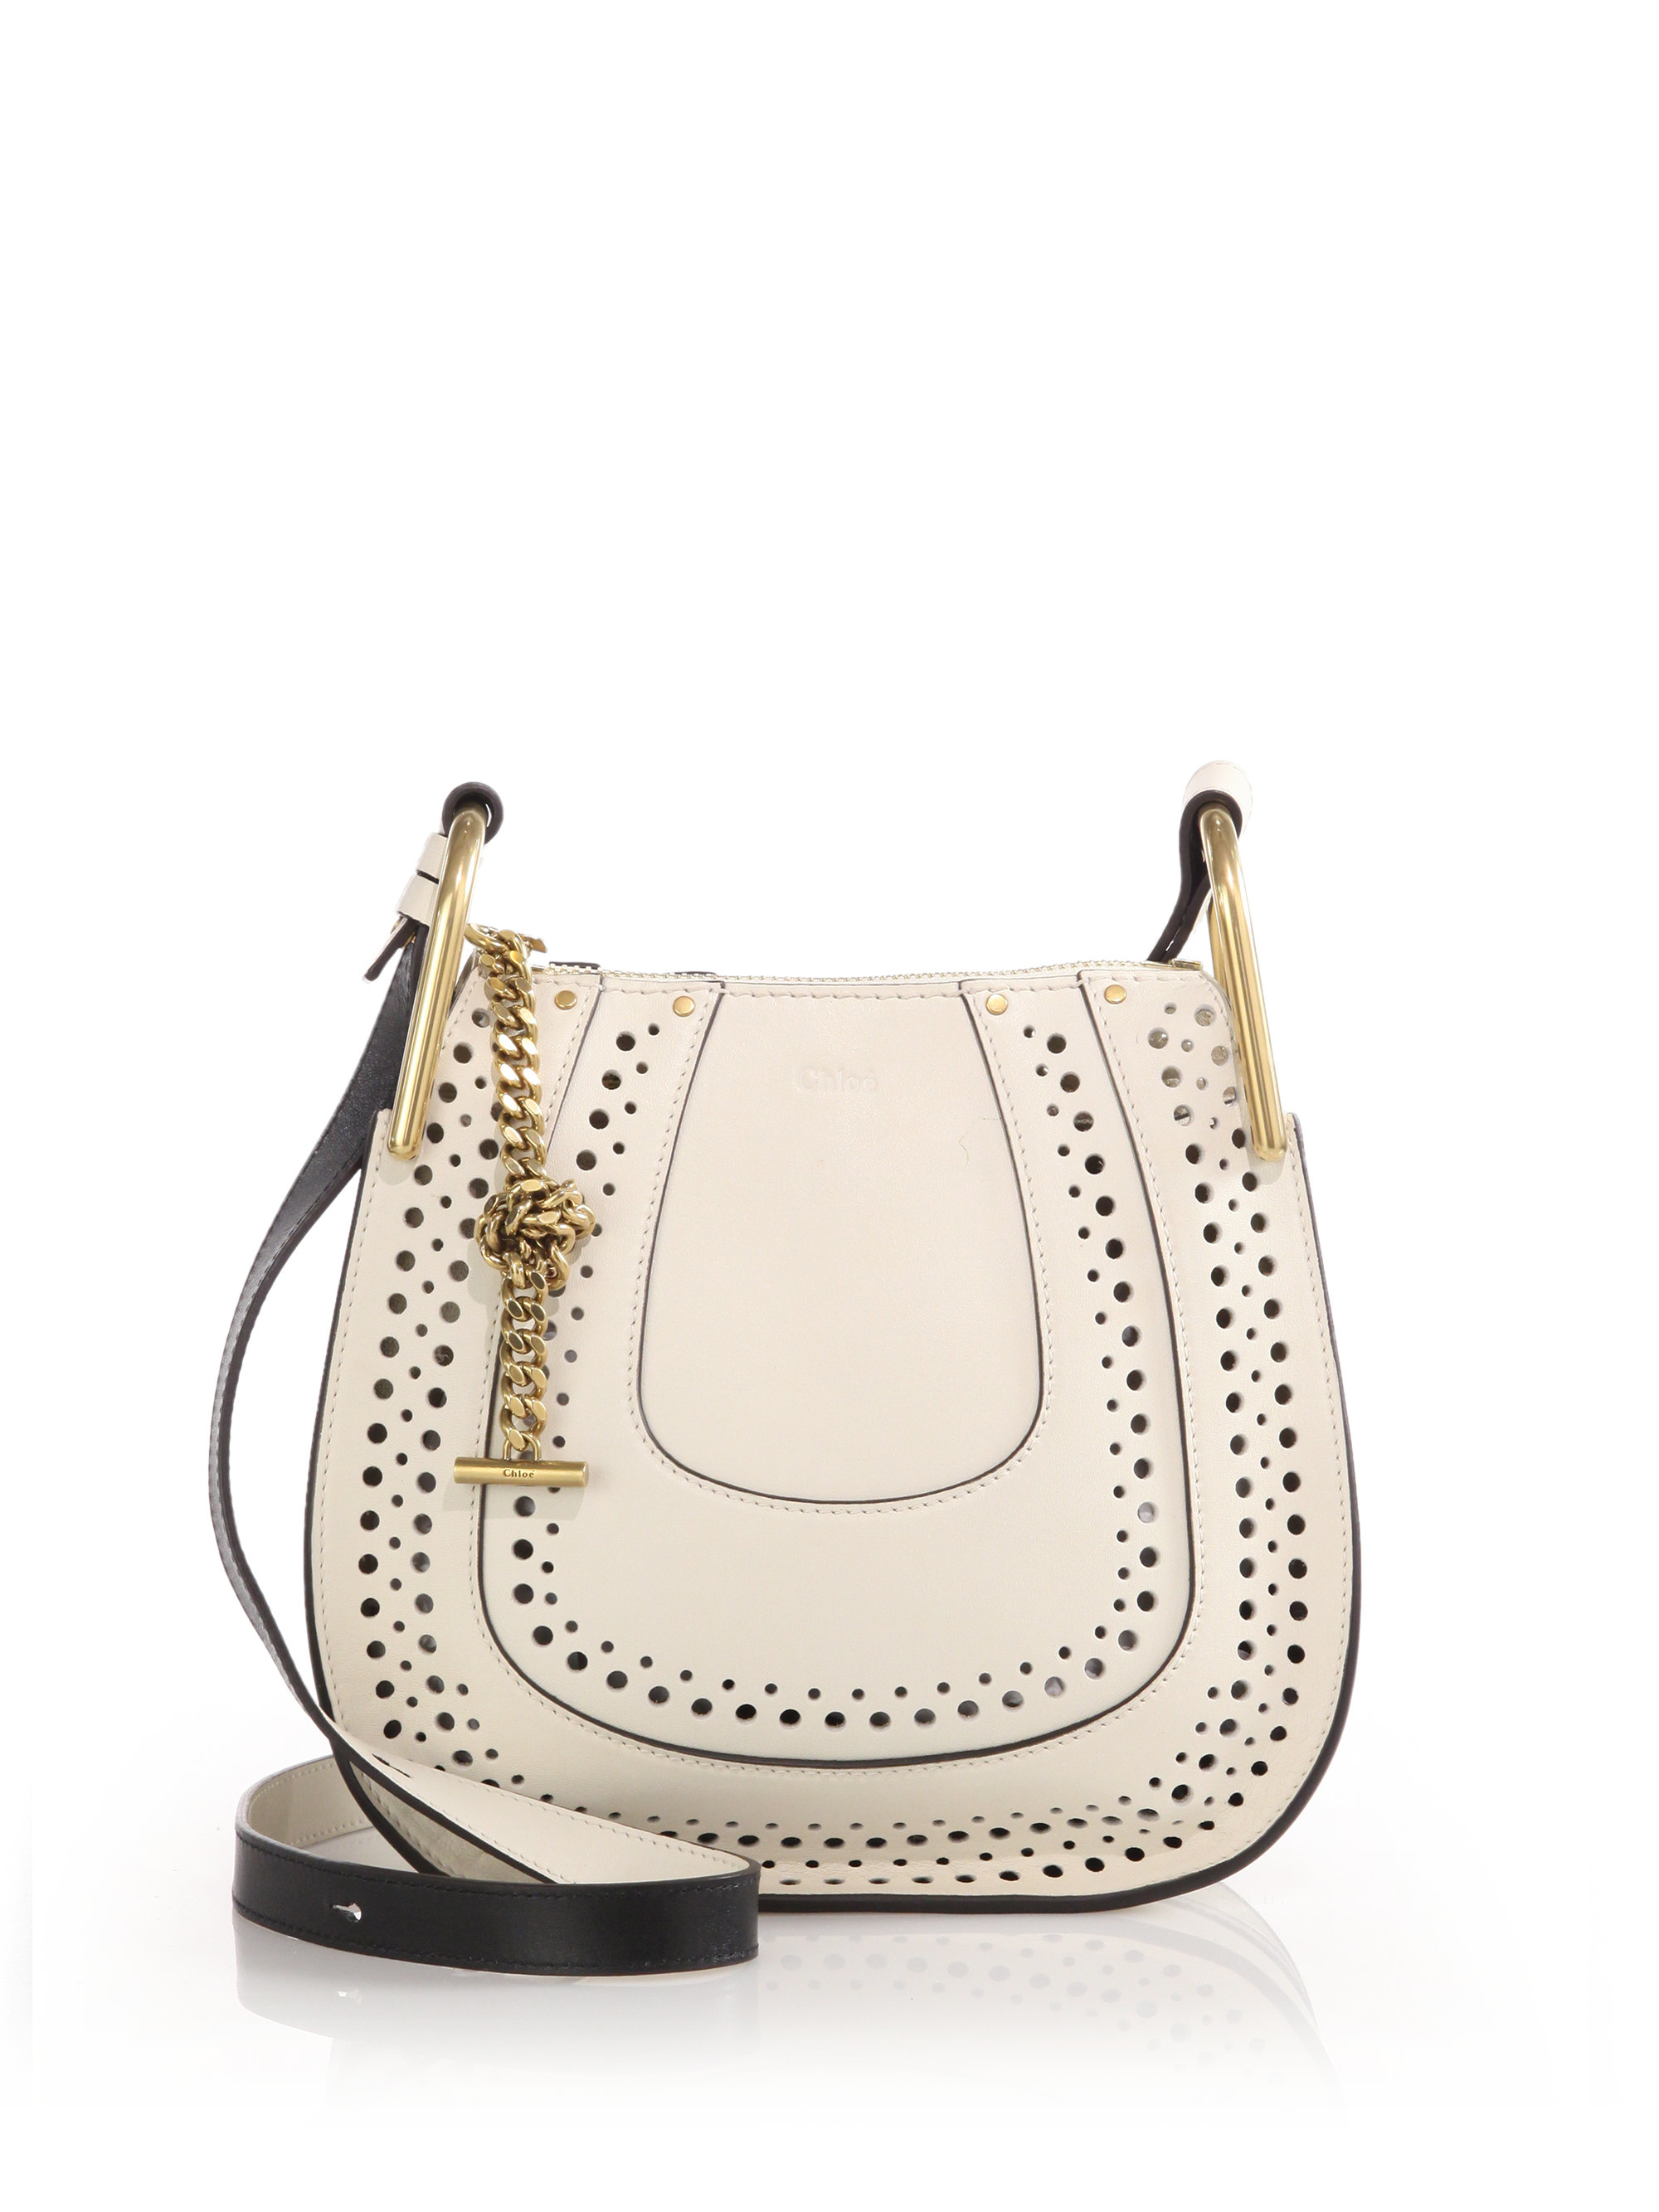 6604abdc5c Lyst Chloé Hayley Small Perforated Leather Crossbody Bag In White